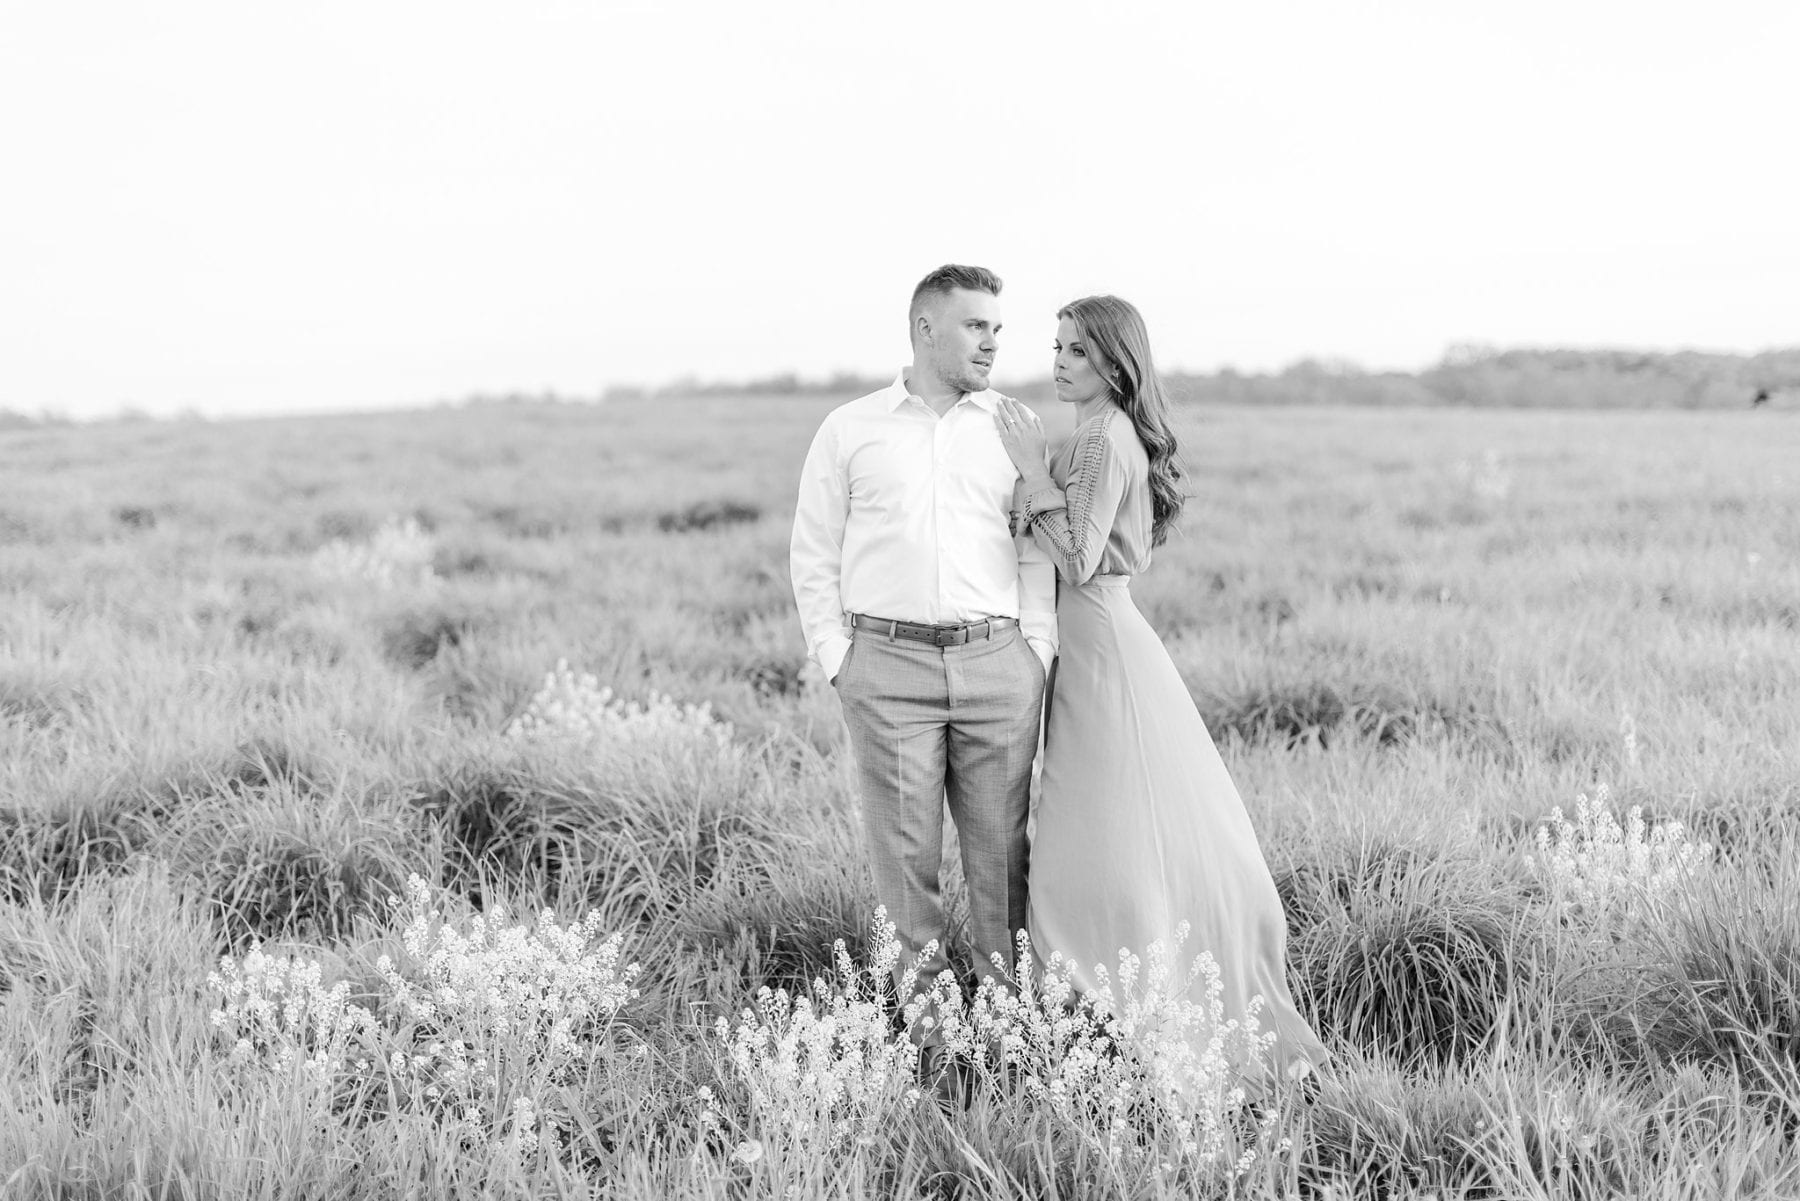 Goodstone Inn Engagement Session Virginia Wedding Photographer Megan Kelsey Photography-330.jpg